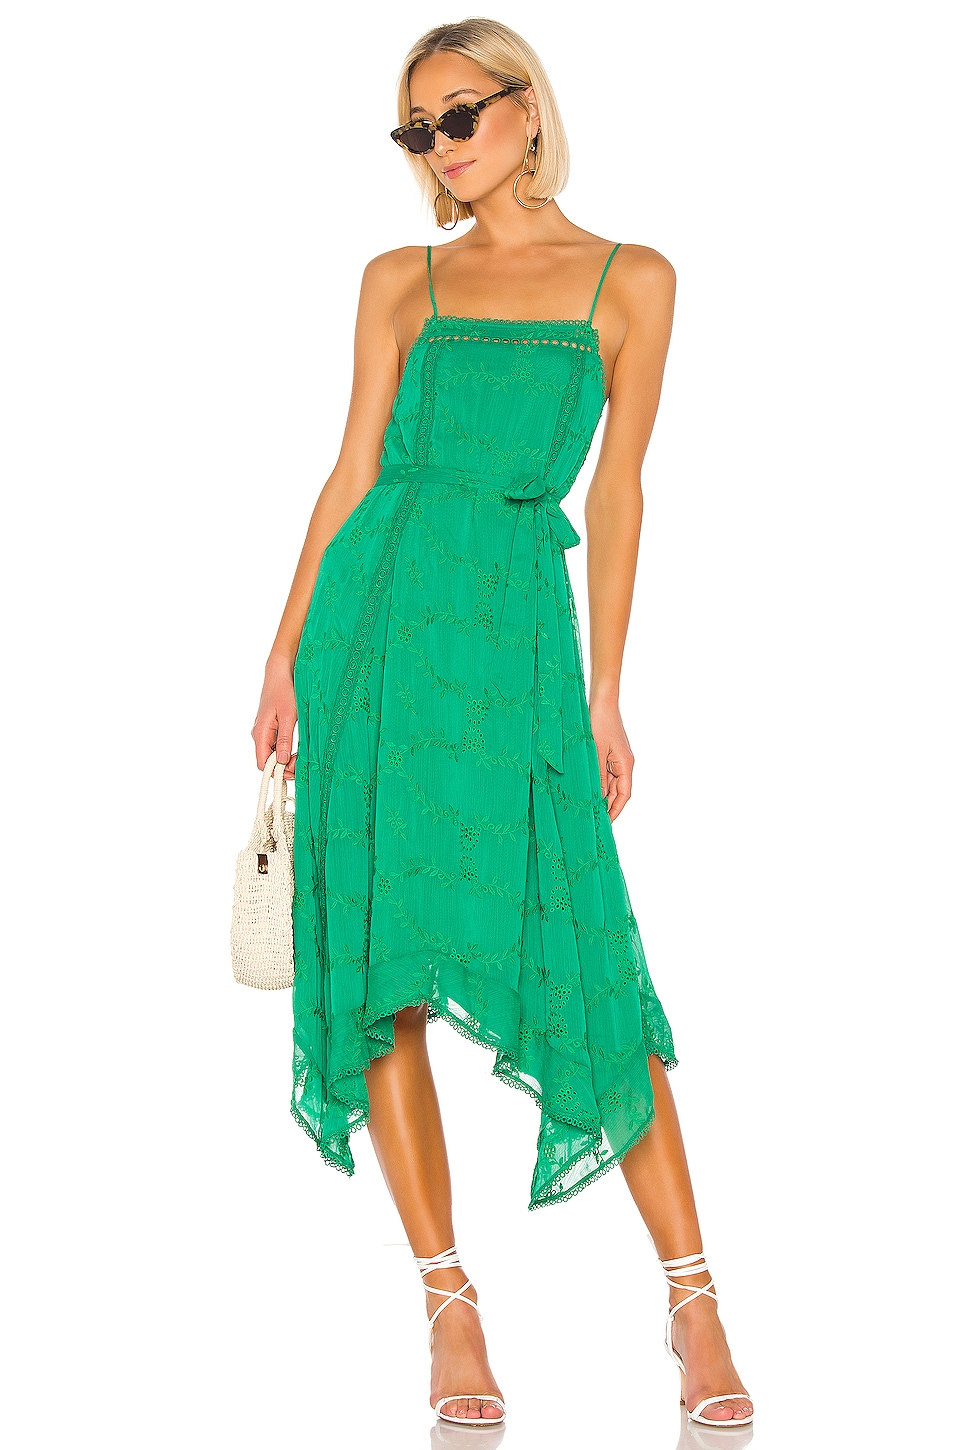 Tularosa Maxine Dress in Green